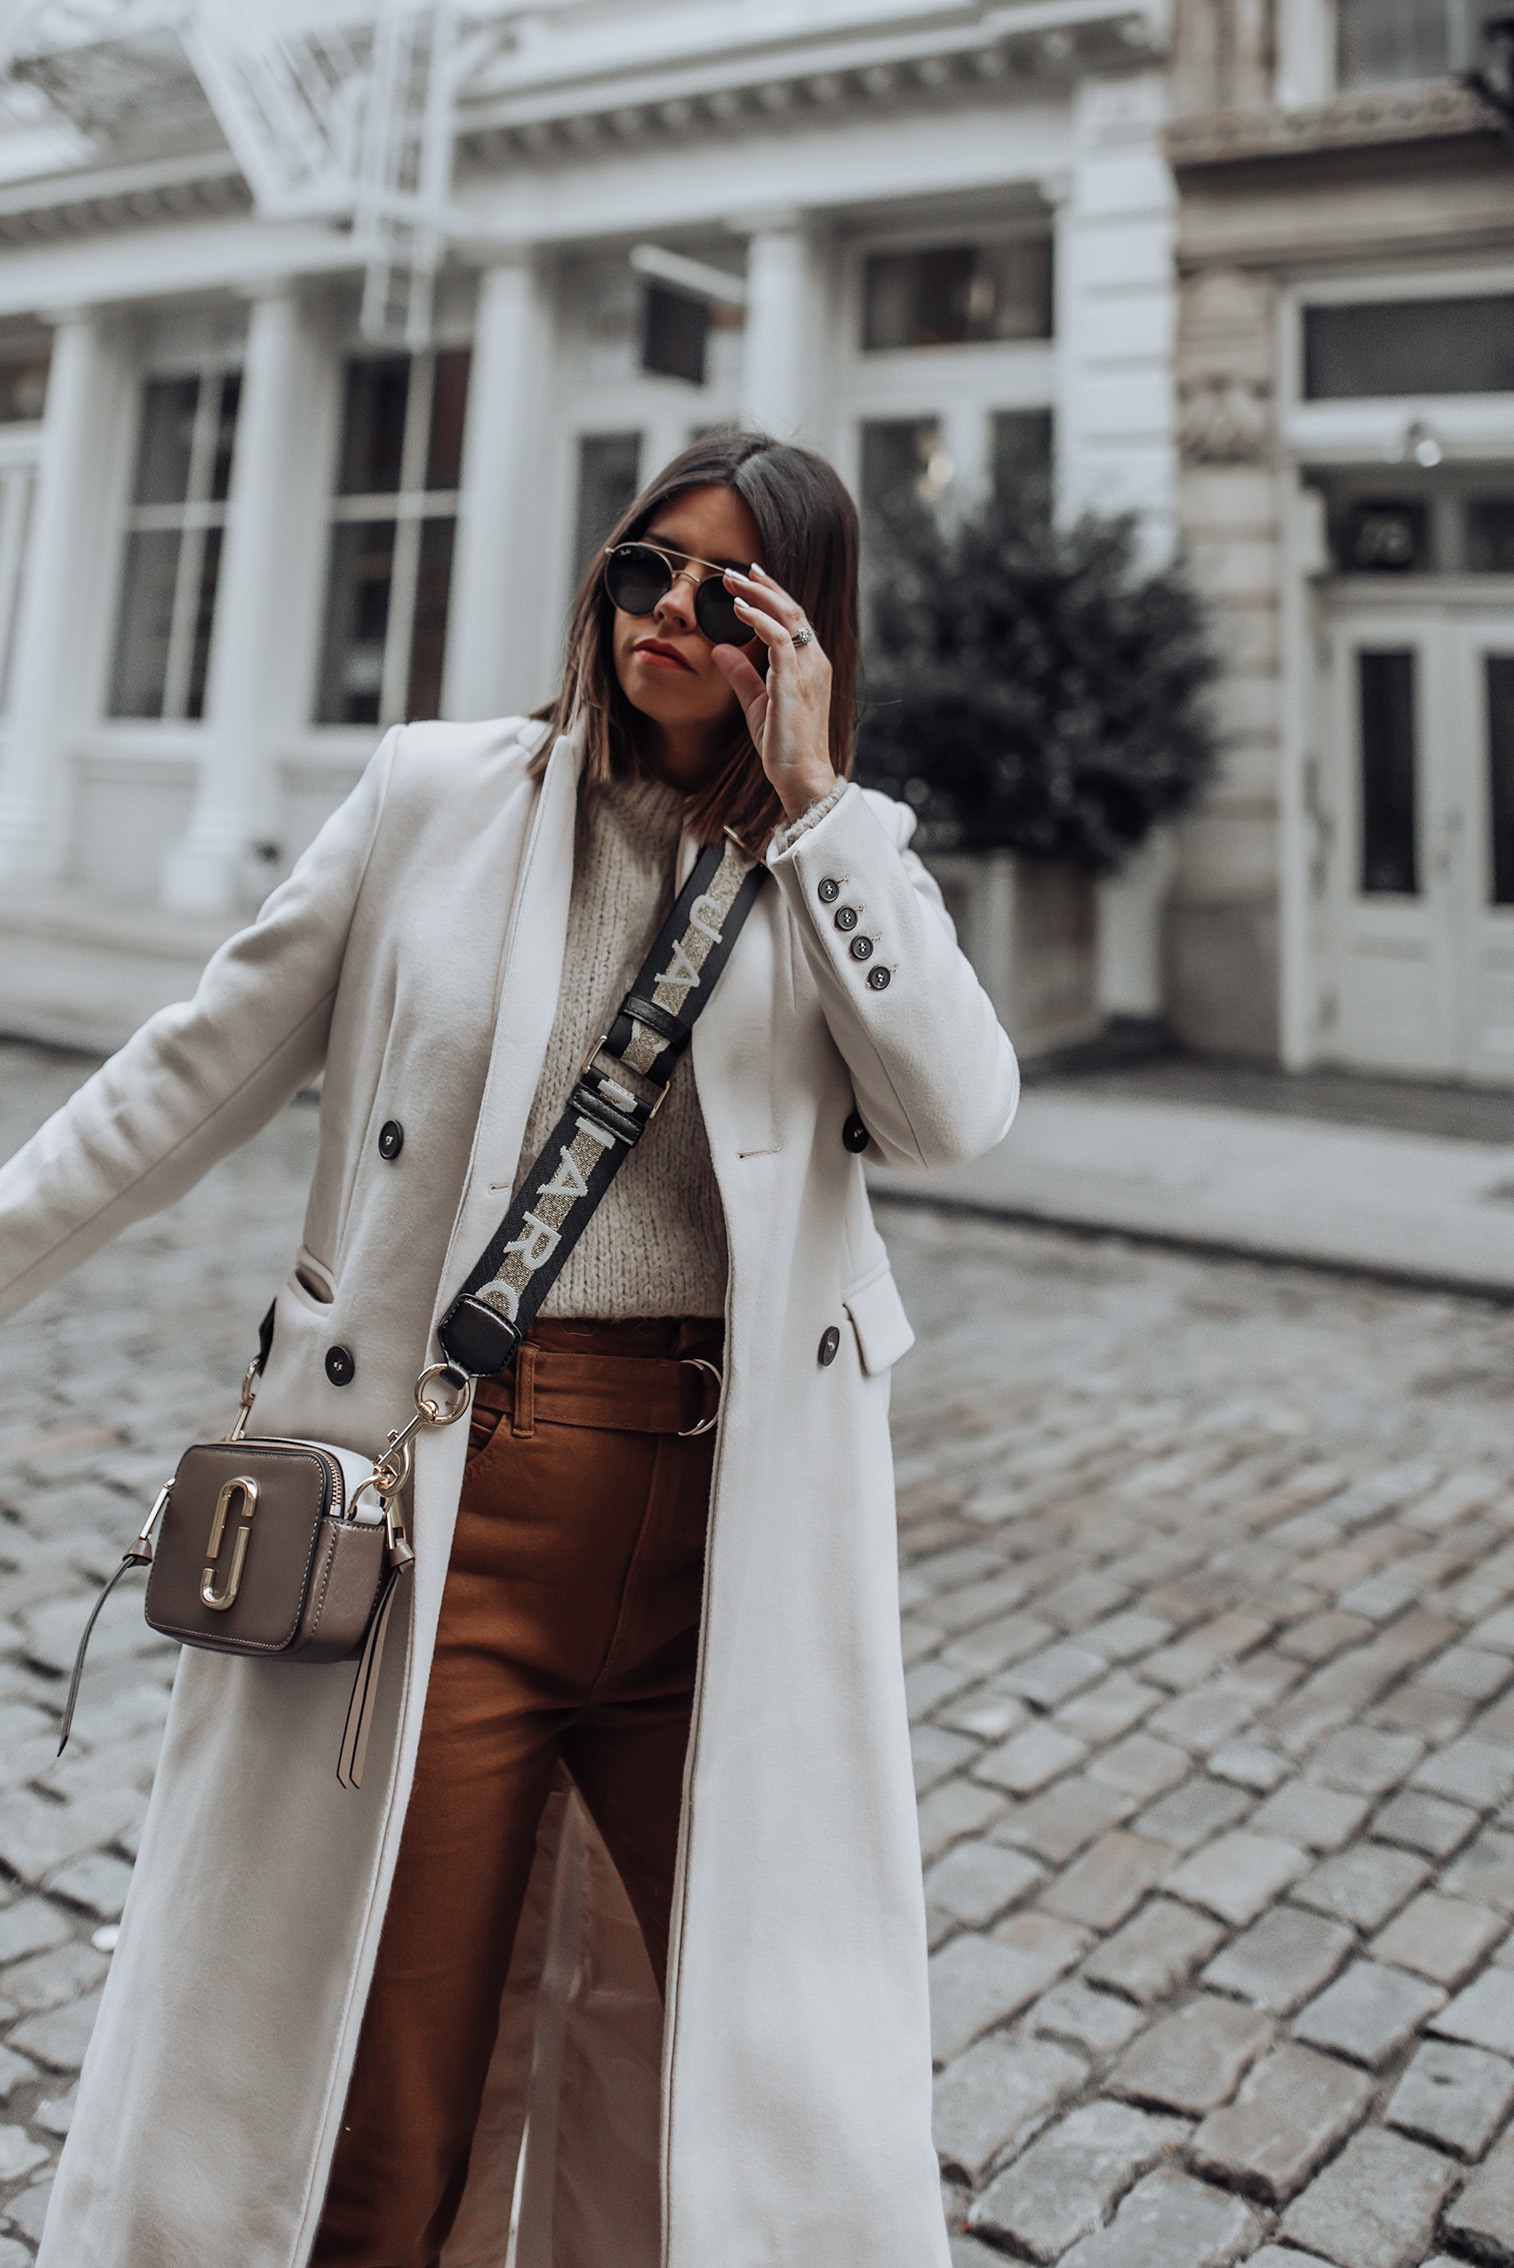 Pants (Berska, similar here and also love this pair) | Marc Jacobs Snapshot Camera Bag | Wool Coat (similar here) | Sweater | #streetstyle #marcjacobs #ootd